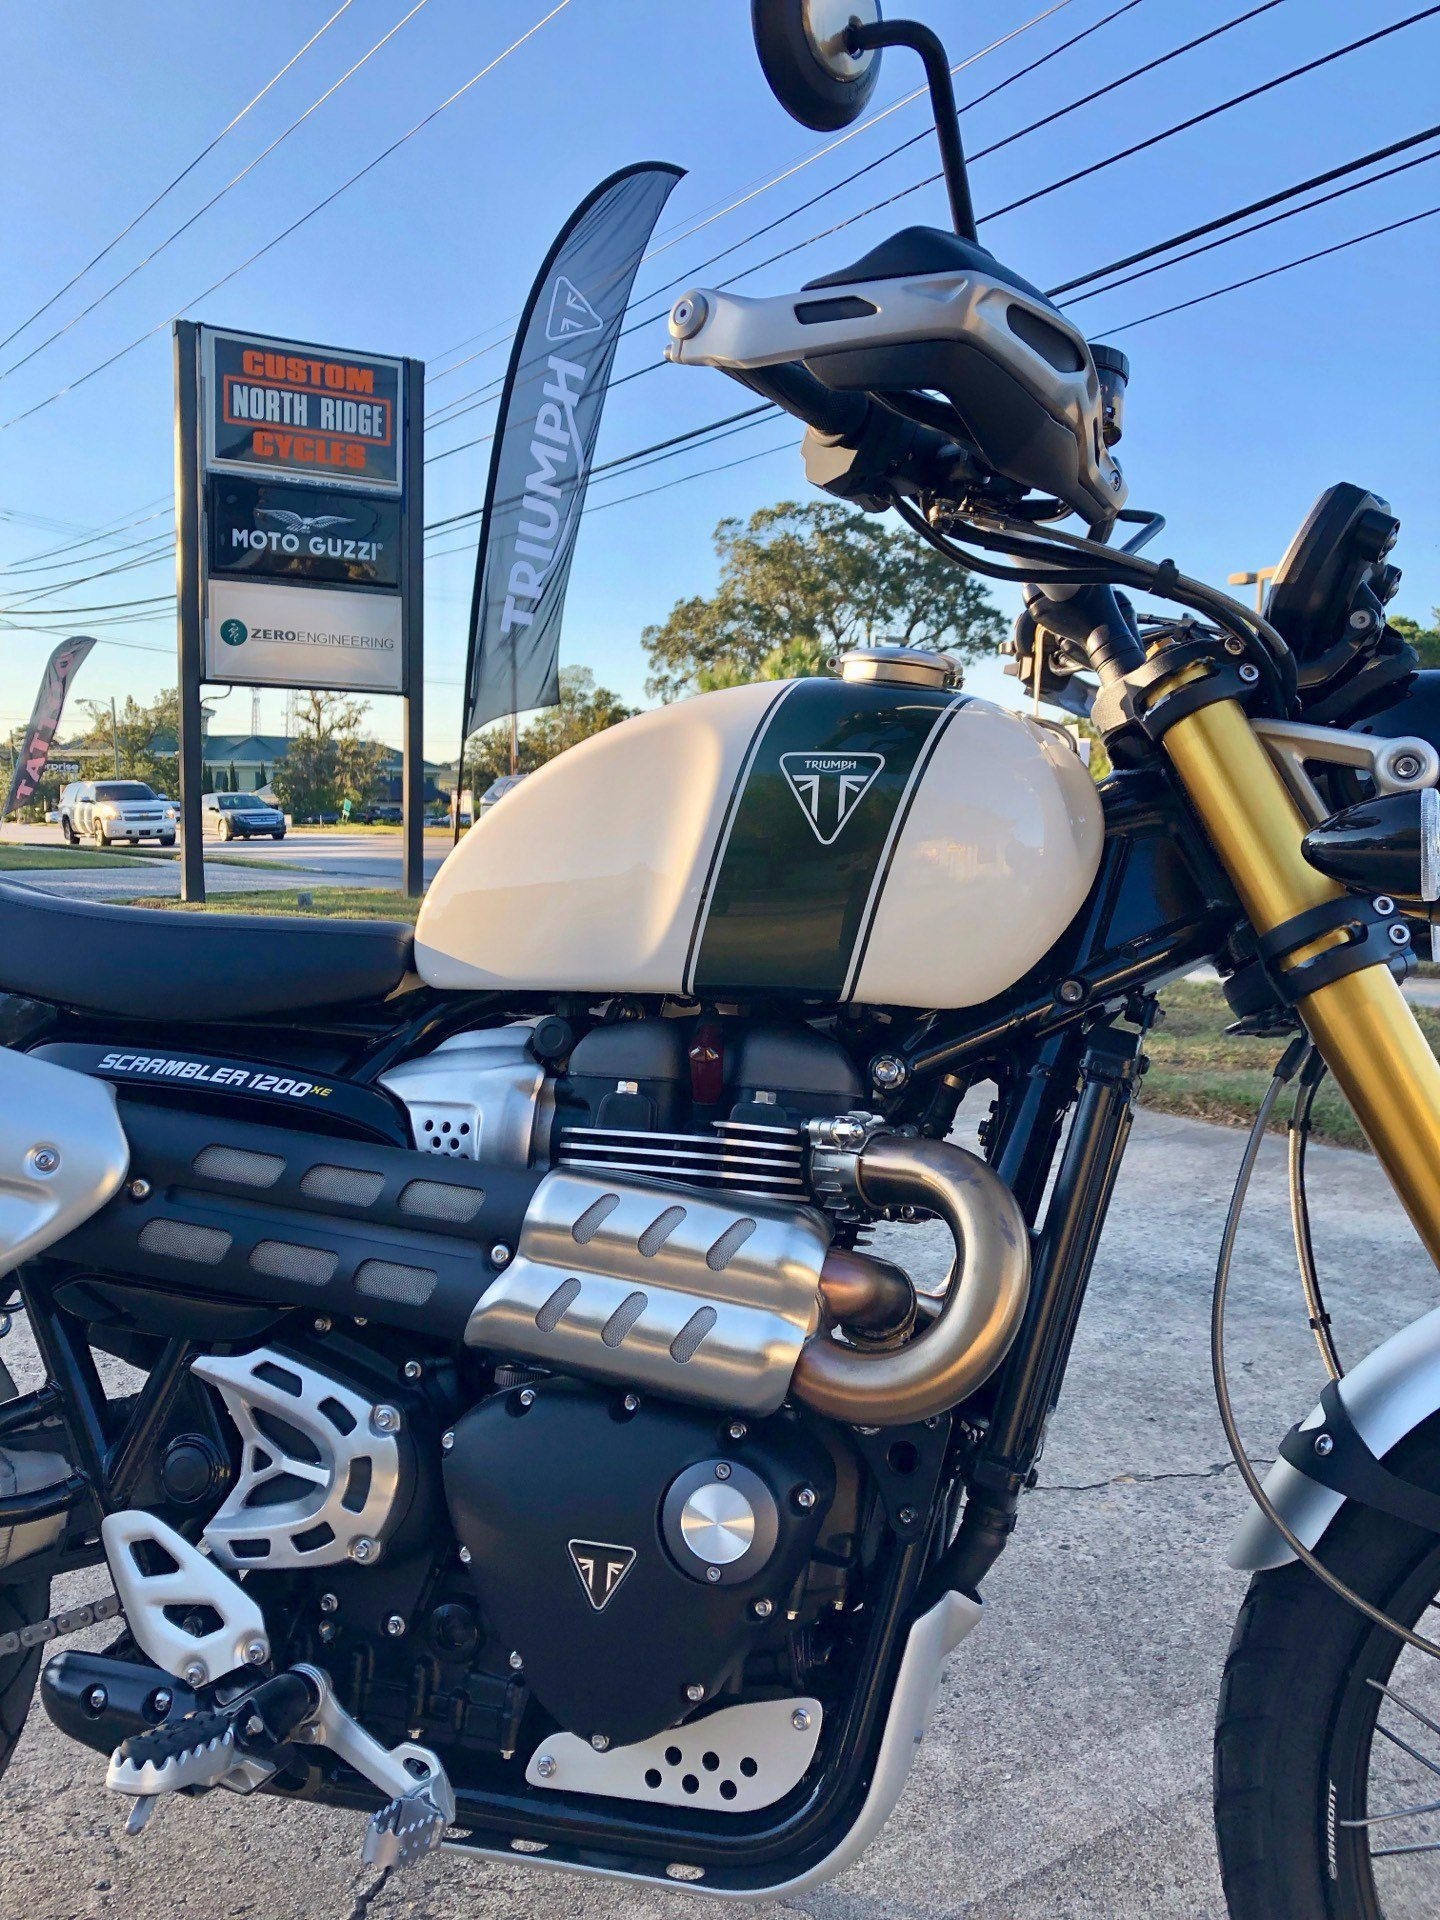 2019 Triumph Scrambler 1200 XE in Charleston, South Carolina - Photo 2